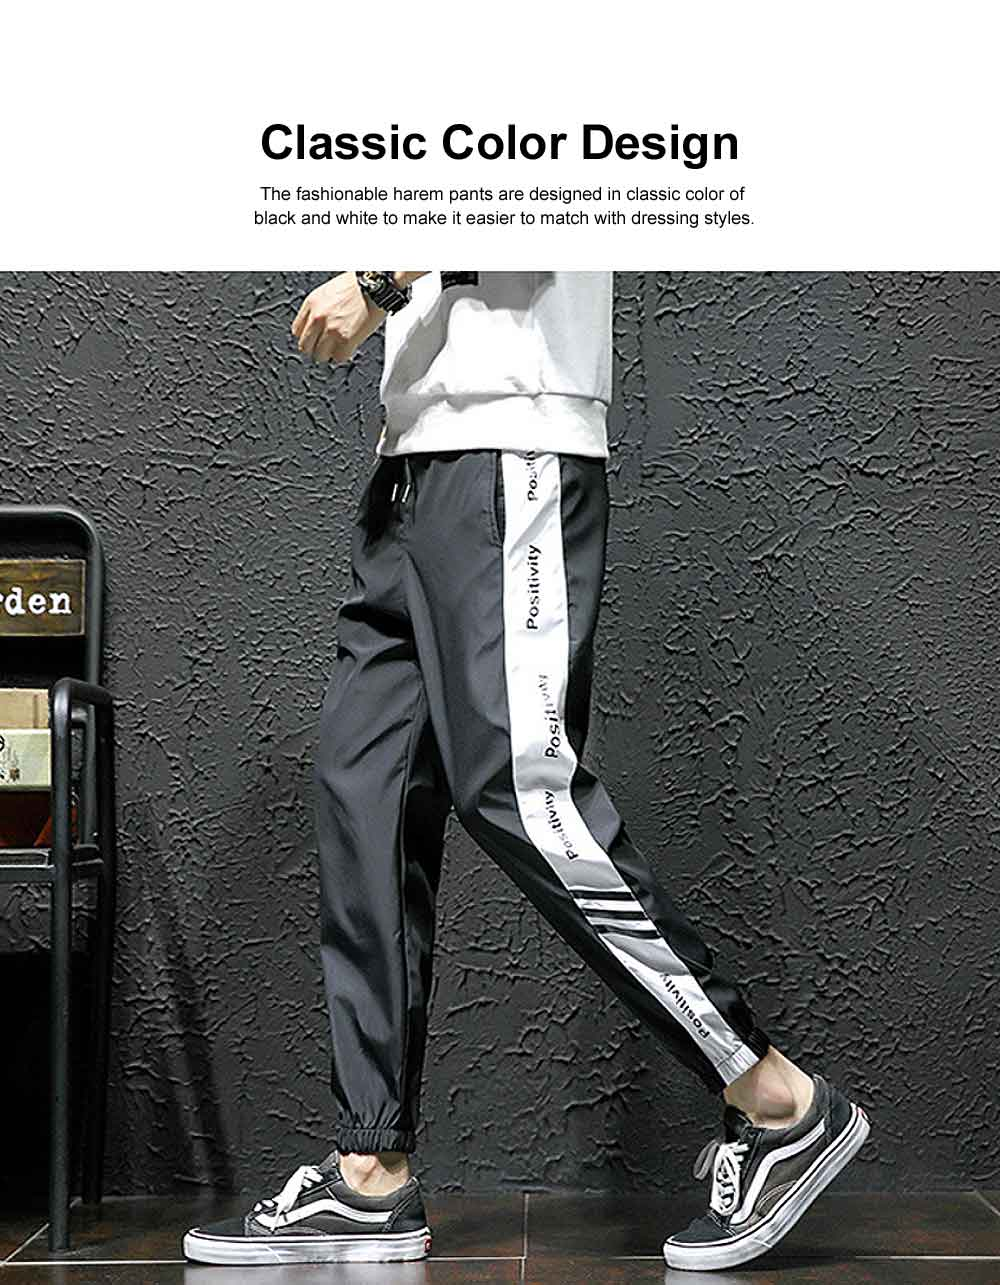 2019 Casual Harem Pants for Male Spring Summer, Mid-rised Slim-fit Pants for Man, Sports Slacks Men's Trousers 2